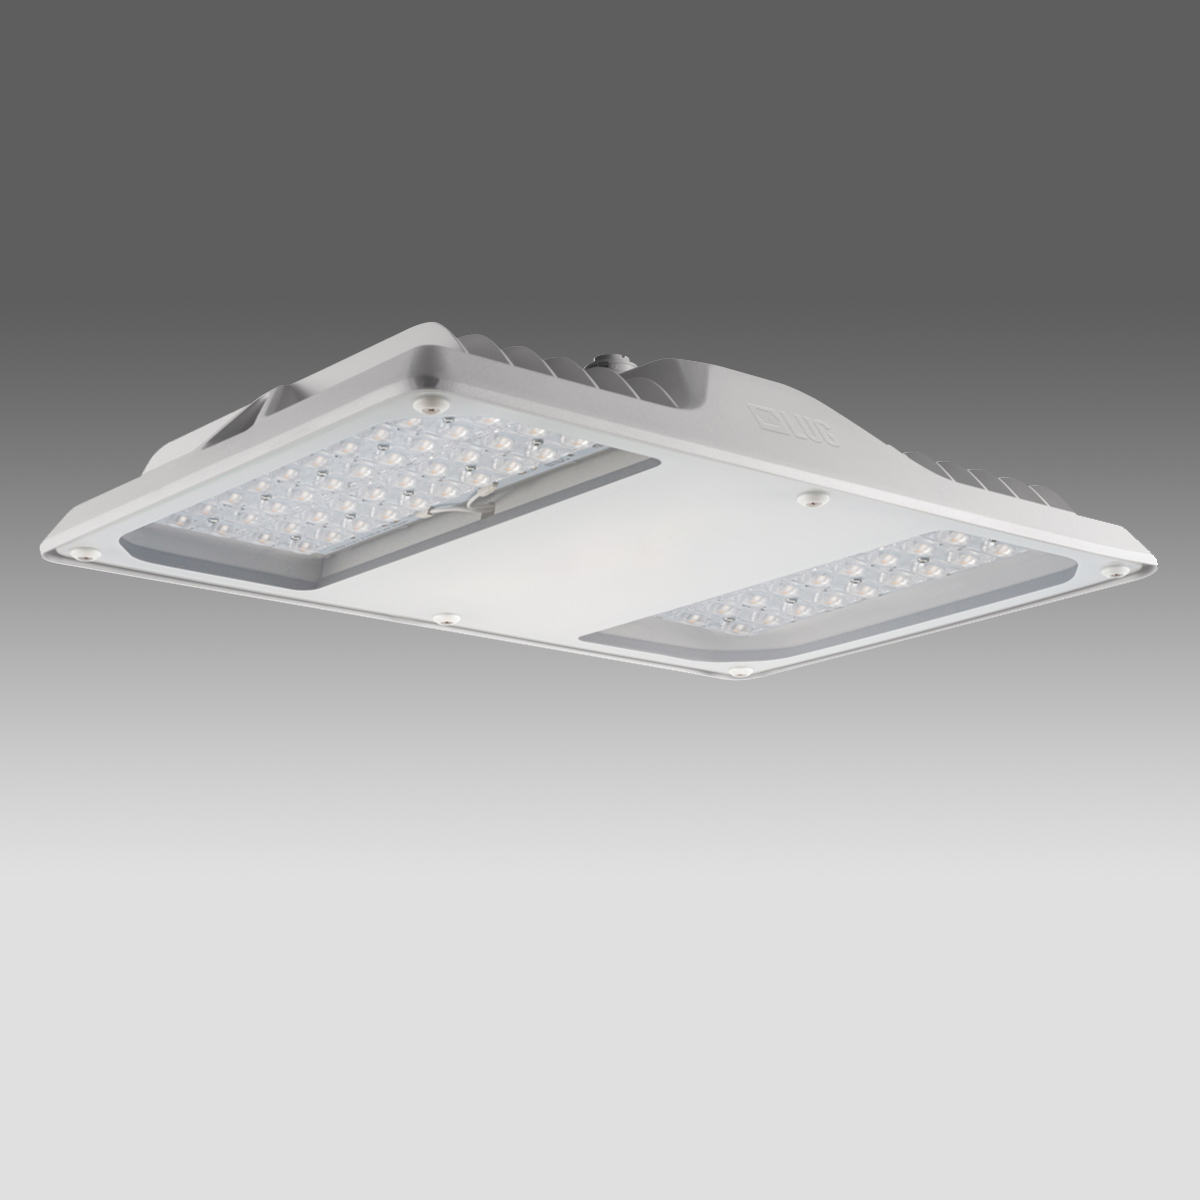 1 Stk Arktur Square PLUS LED 206W 25500lm/740 EVG IP65 55° grau LIG4251011